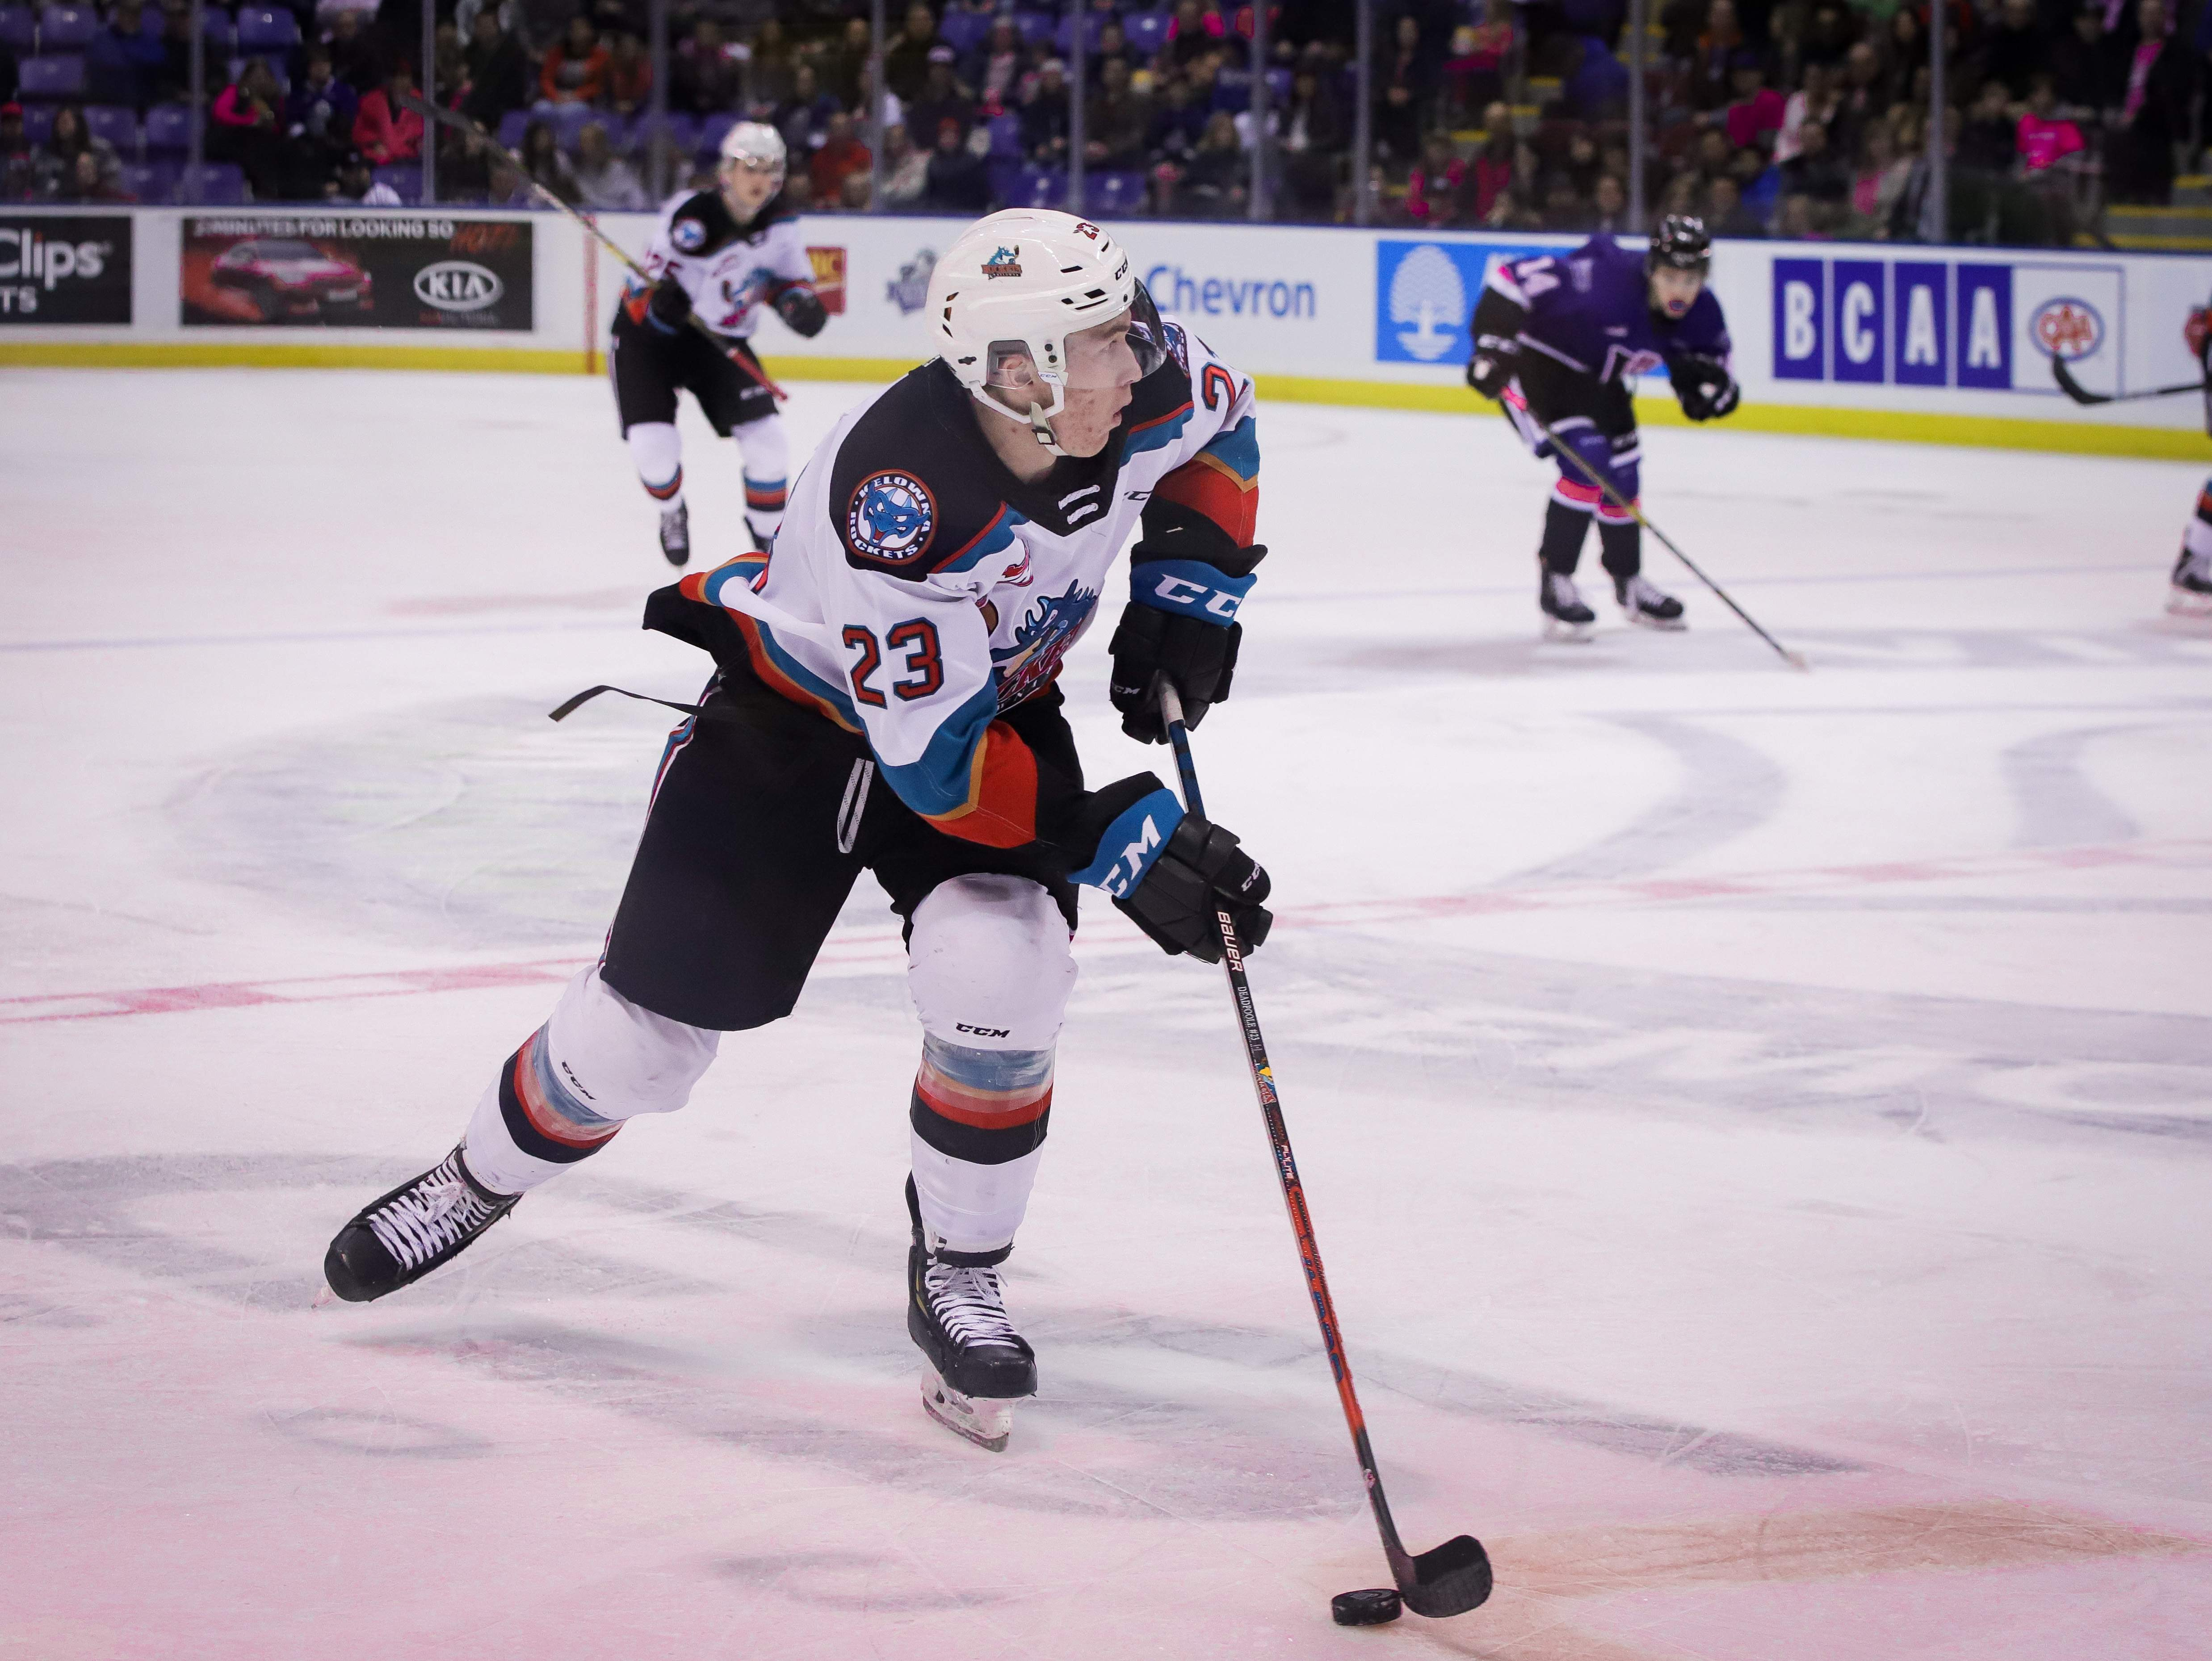 Jake Poole carries the puck up for Kelowna. Photo by Nathanael Laranjeiras